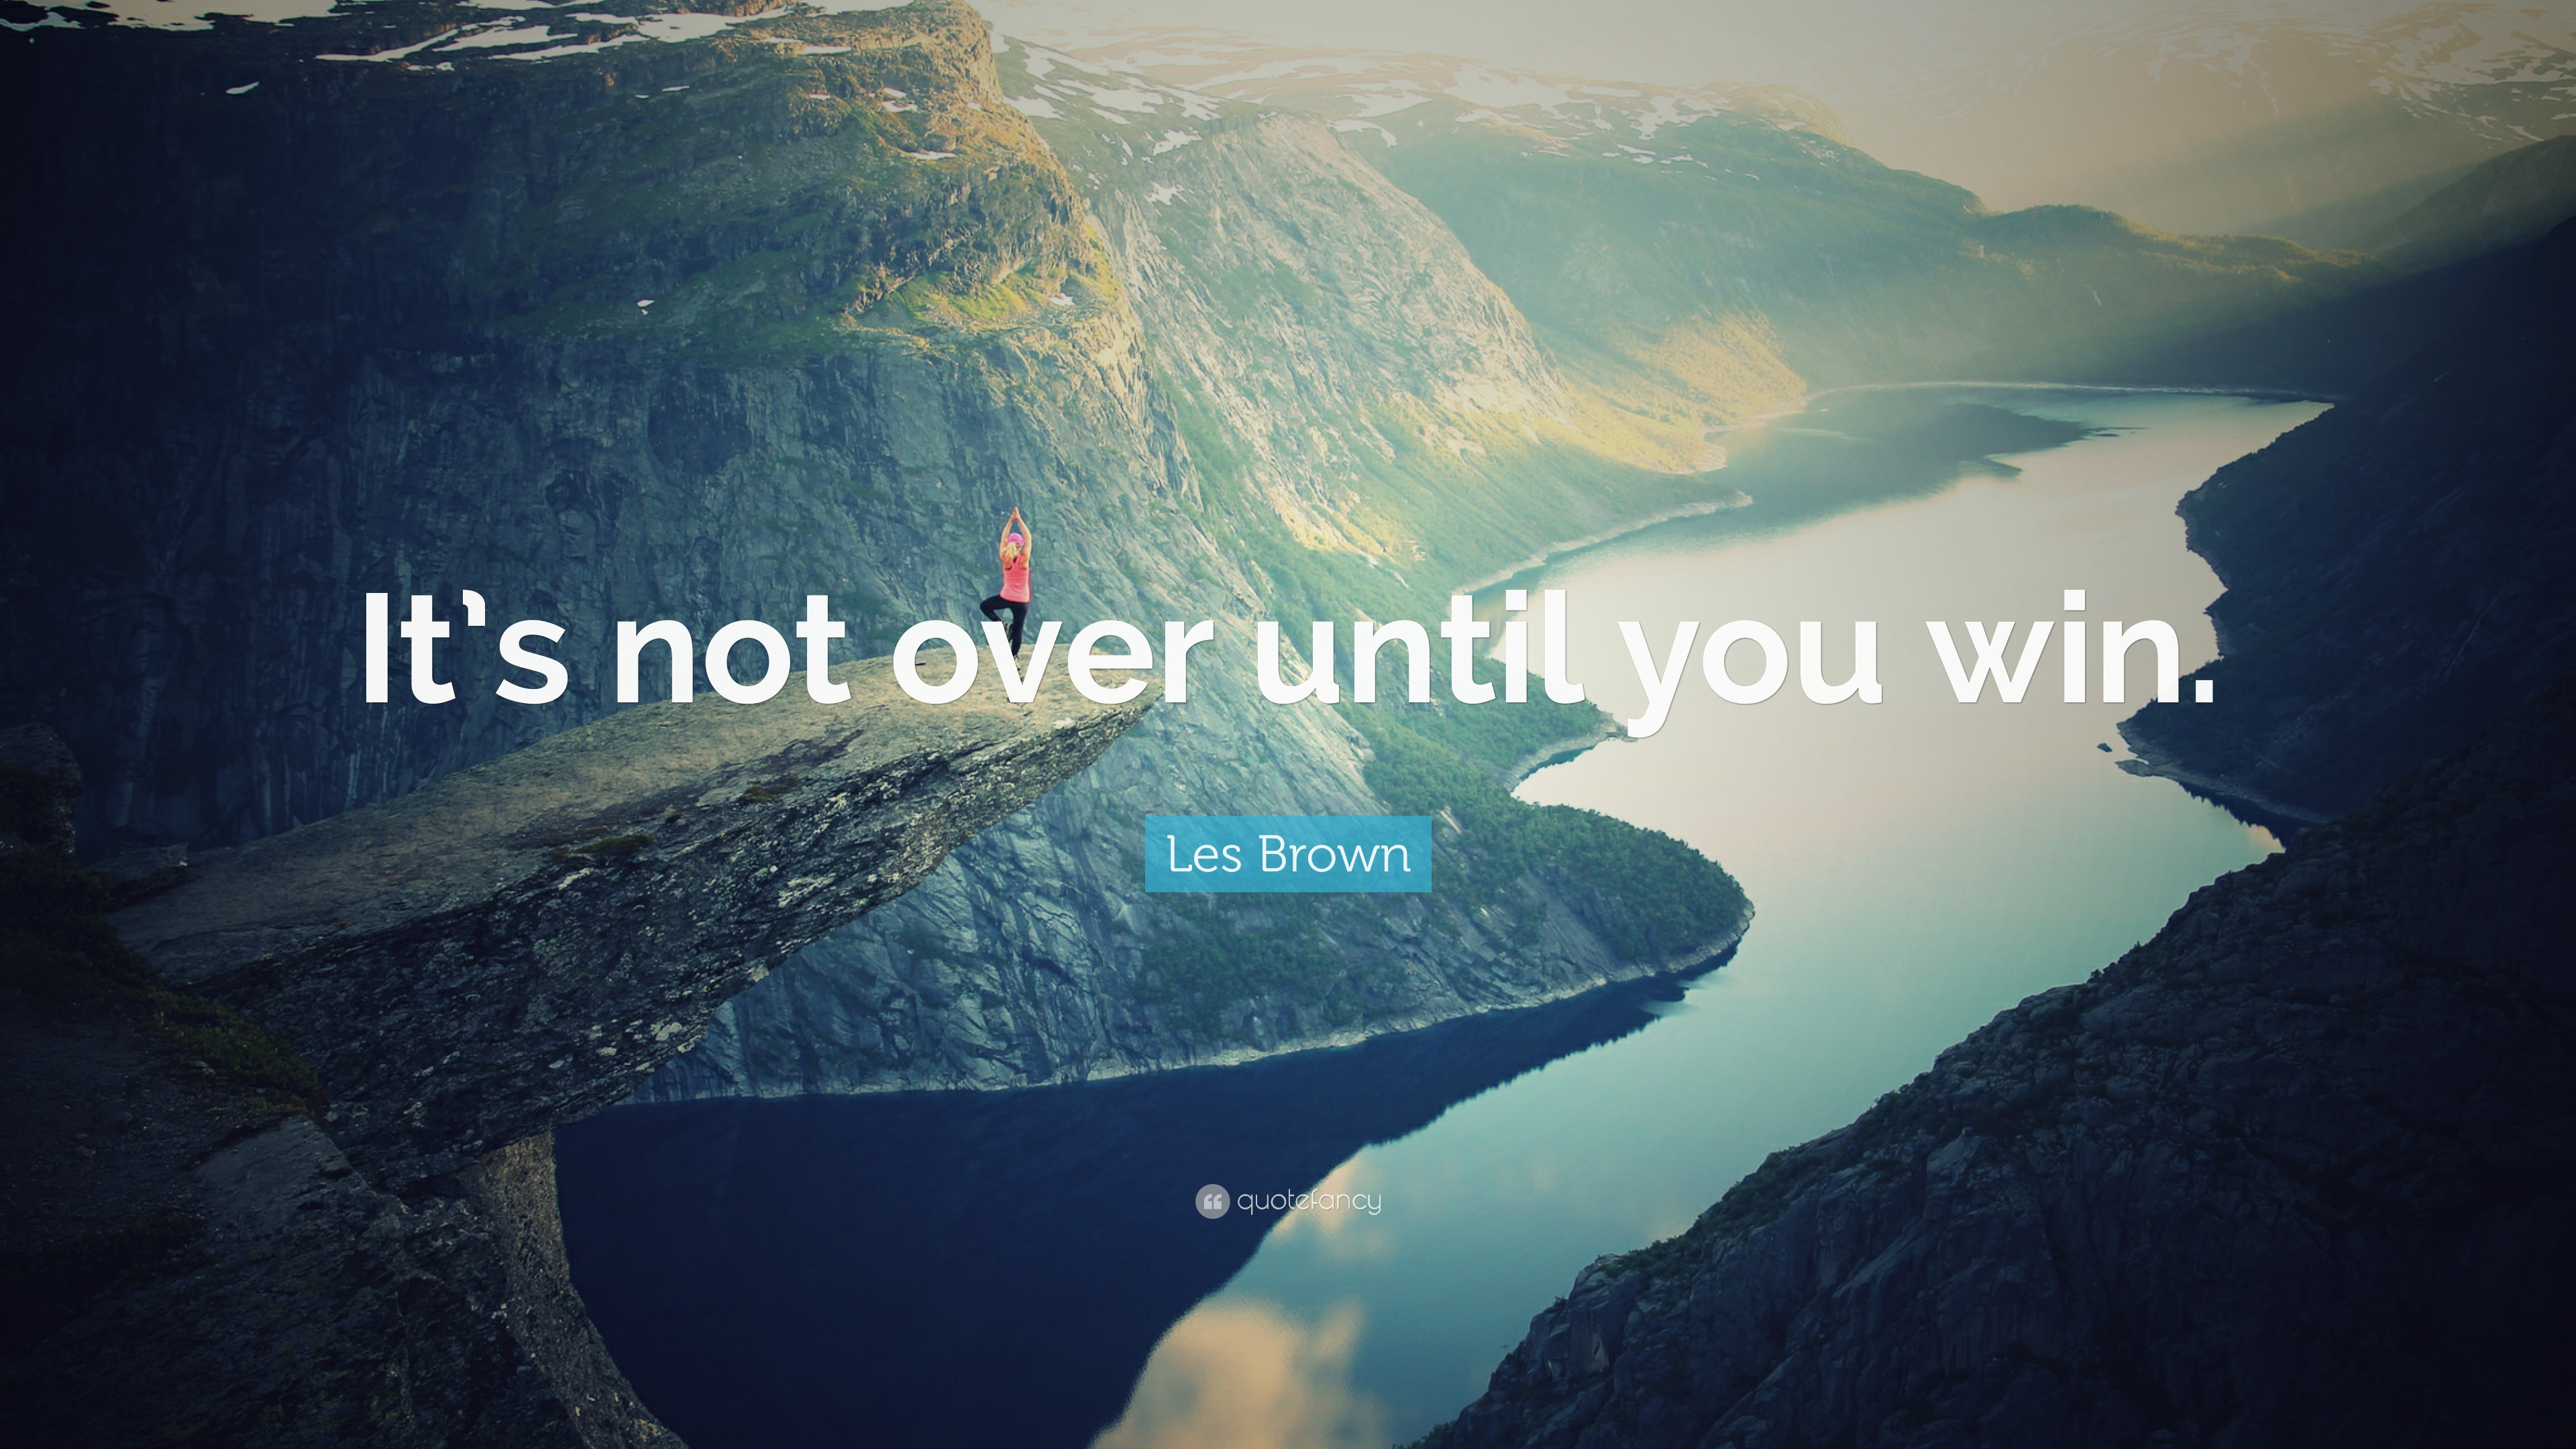 Steve Jobs Motivational Quotes Wallpaper Les Brown Quote It S Not Over Until You Win 31